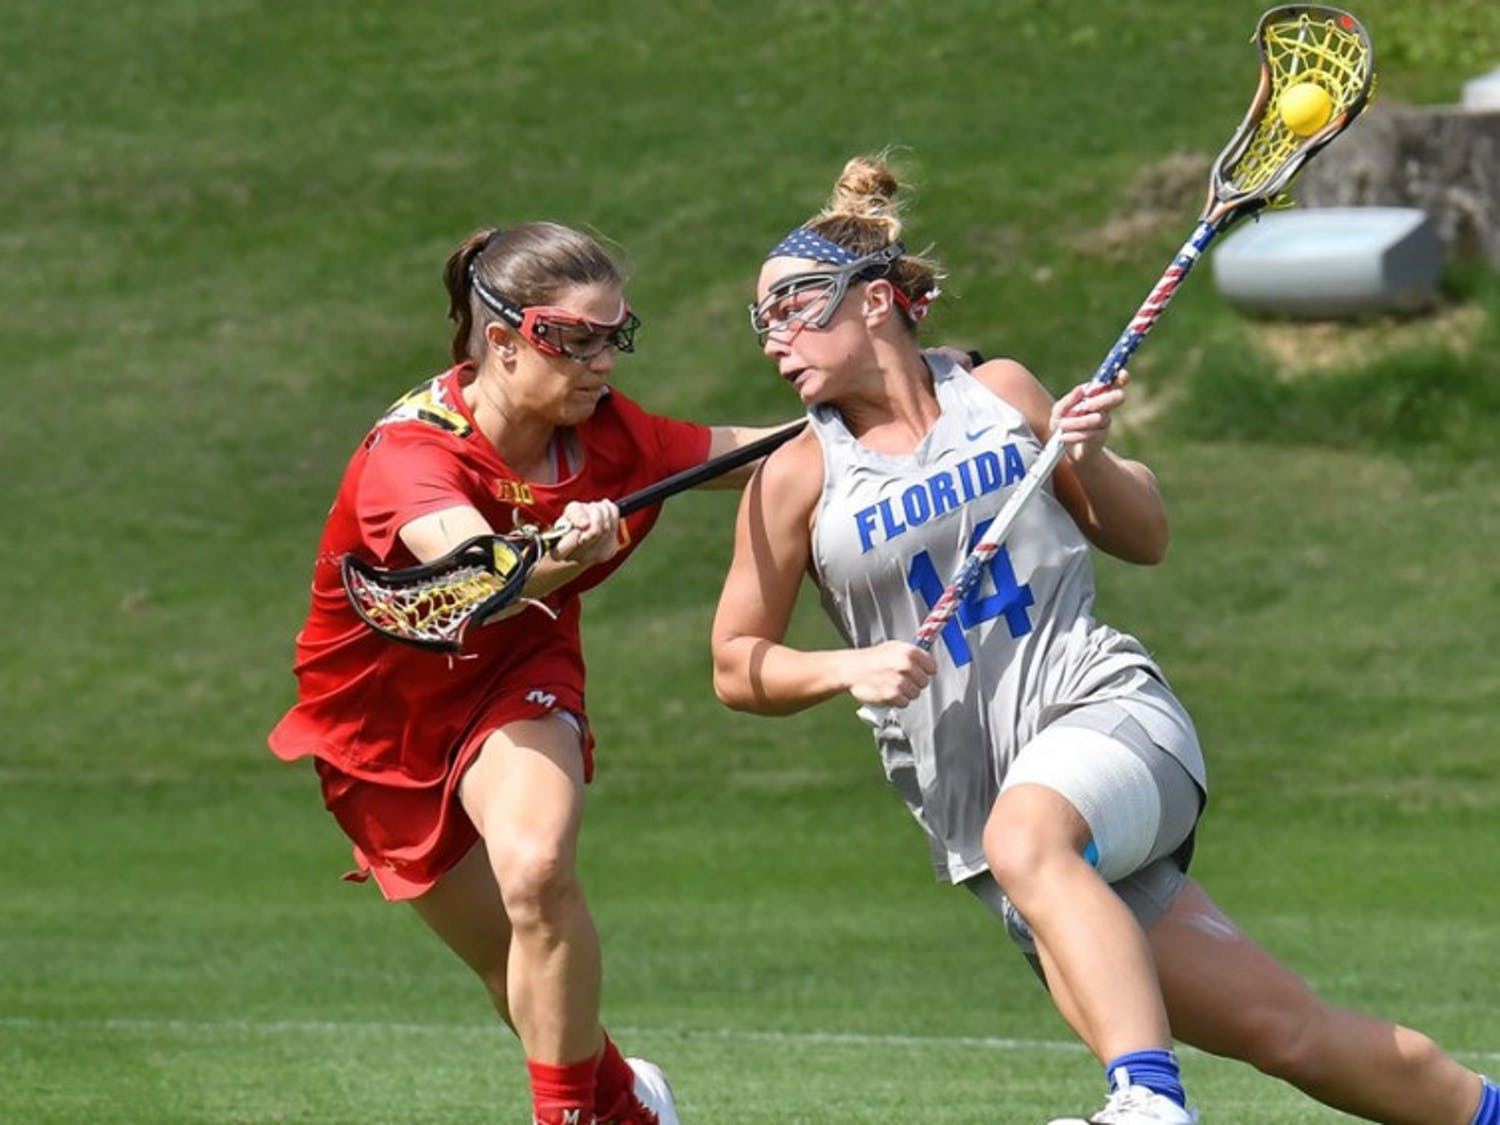 Junior attacker Lindsey Ronbeck scored the first two goals of the game on Saturday, but it wasn't enough as the Gators fell to James Madison, 11-8.